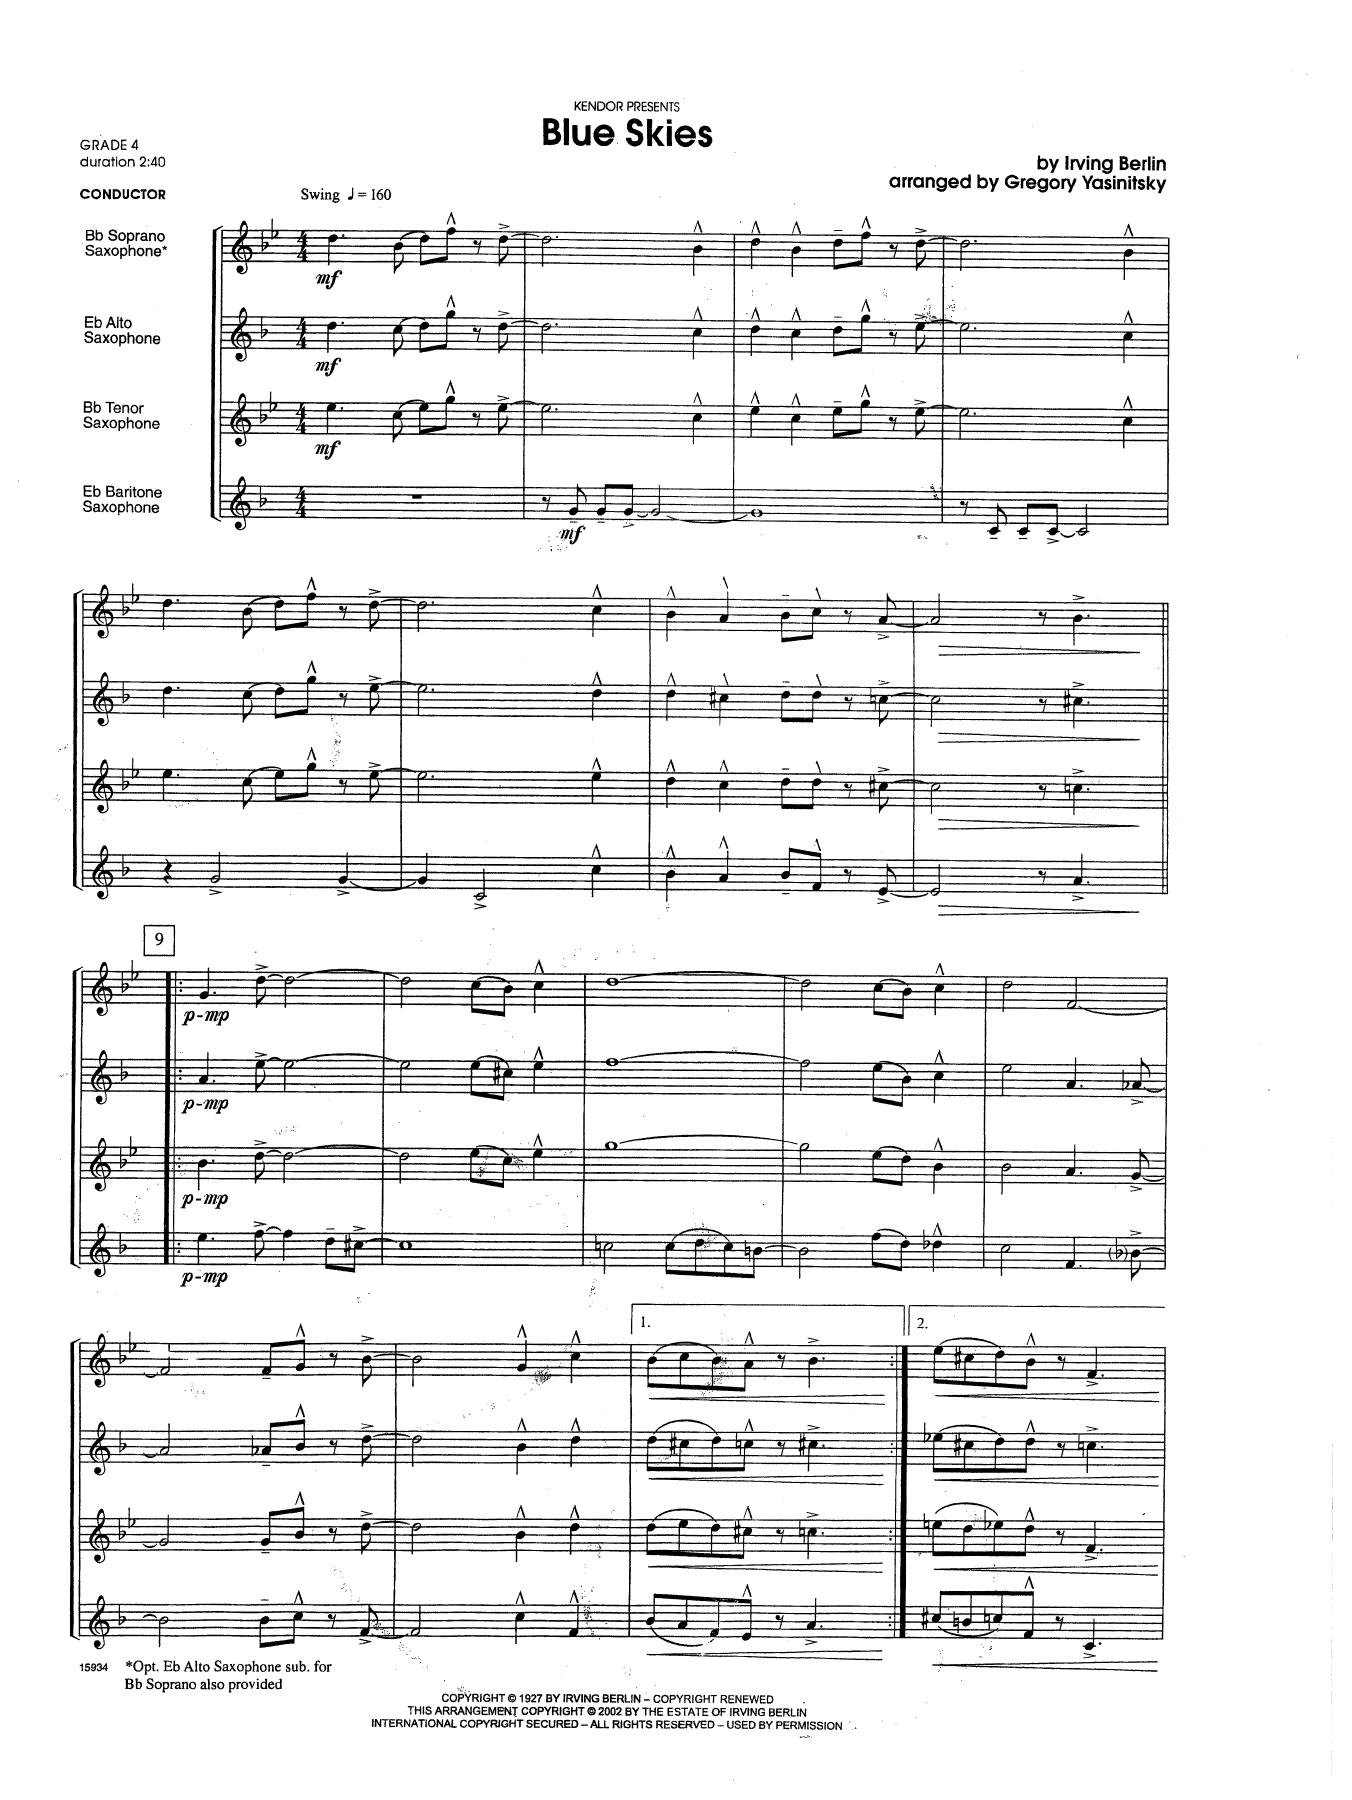 Blue Skies (COMPLETE) sheet music for saxophone quartet by Gregory Yasinitsky and Berlin. Score Image Preview.